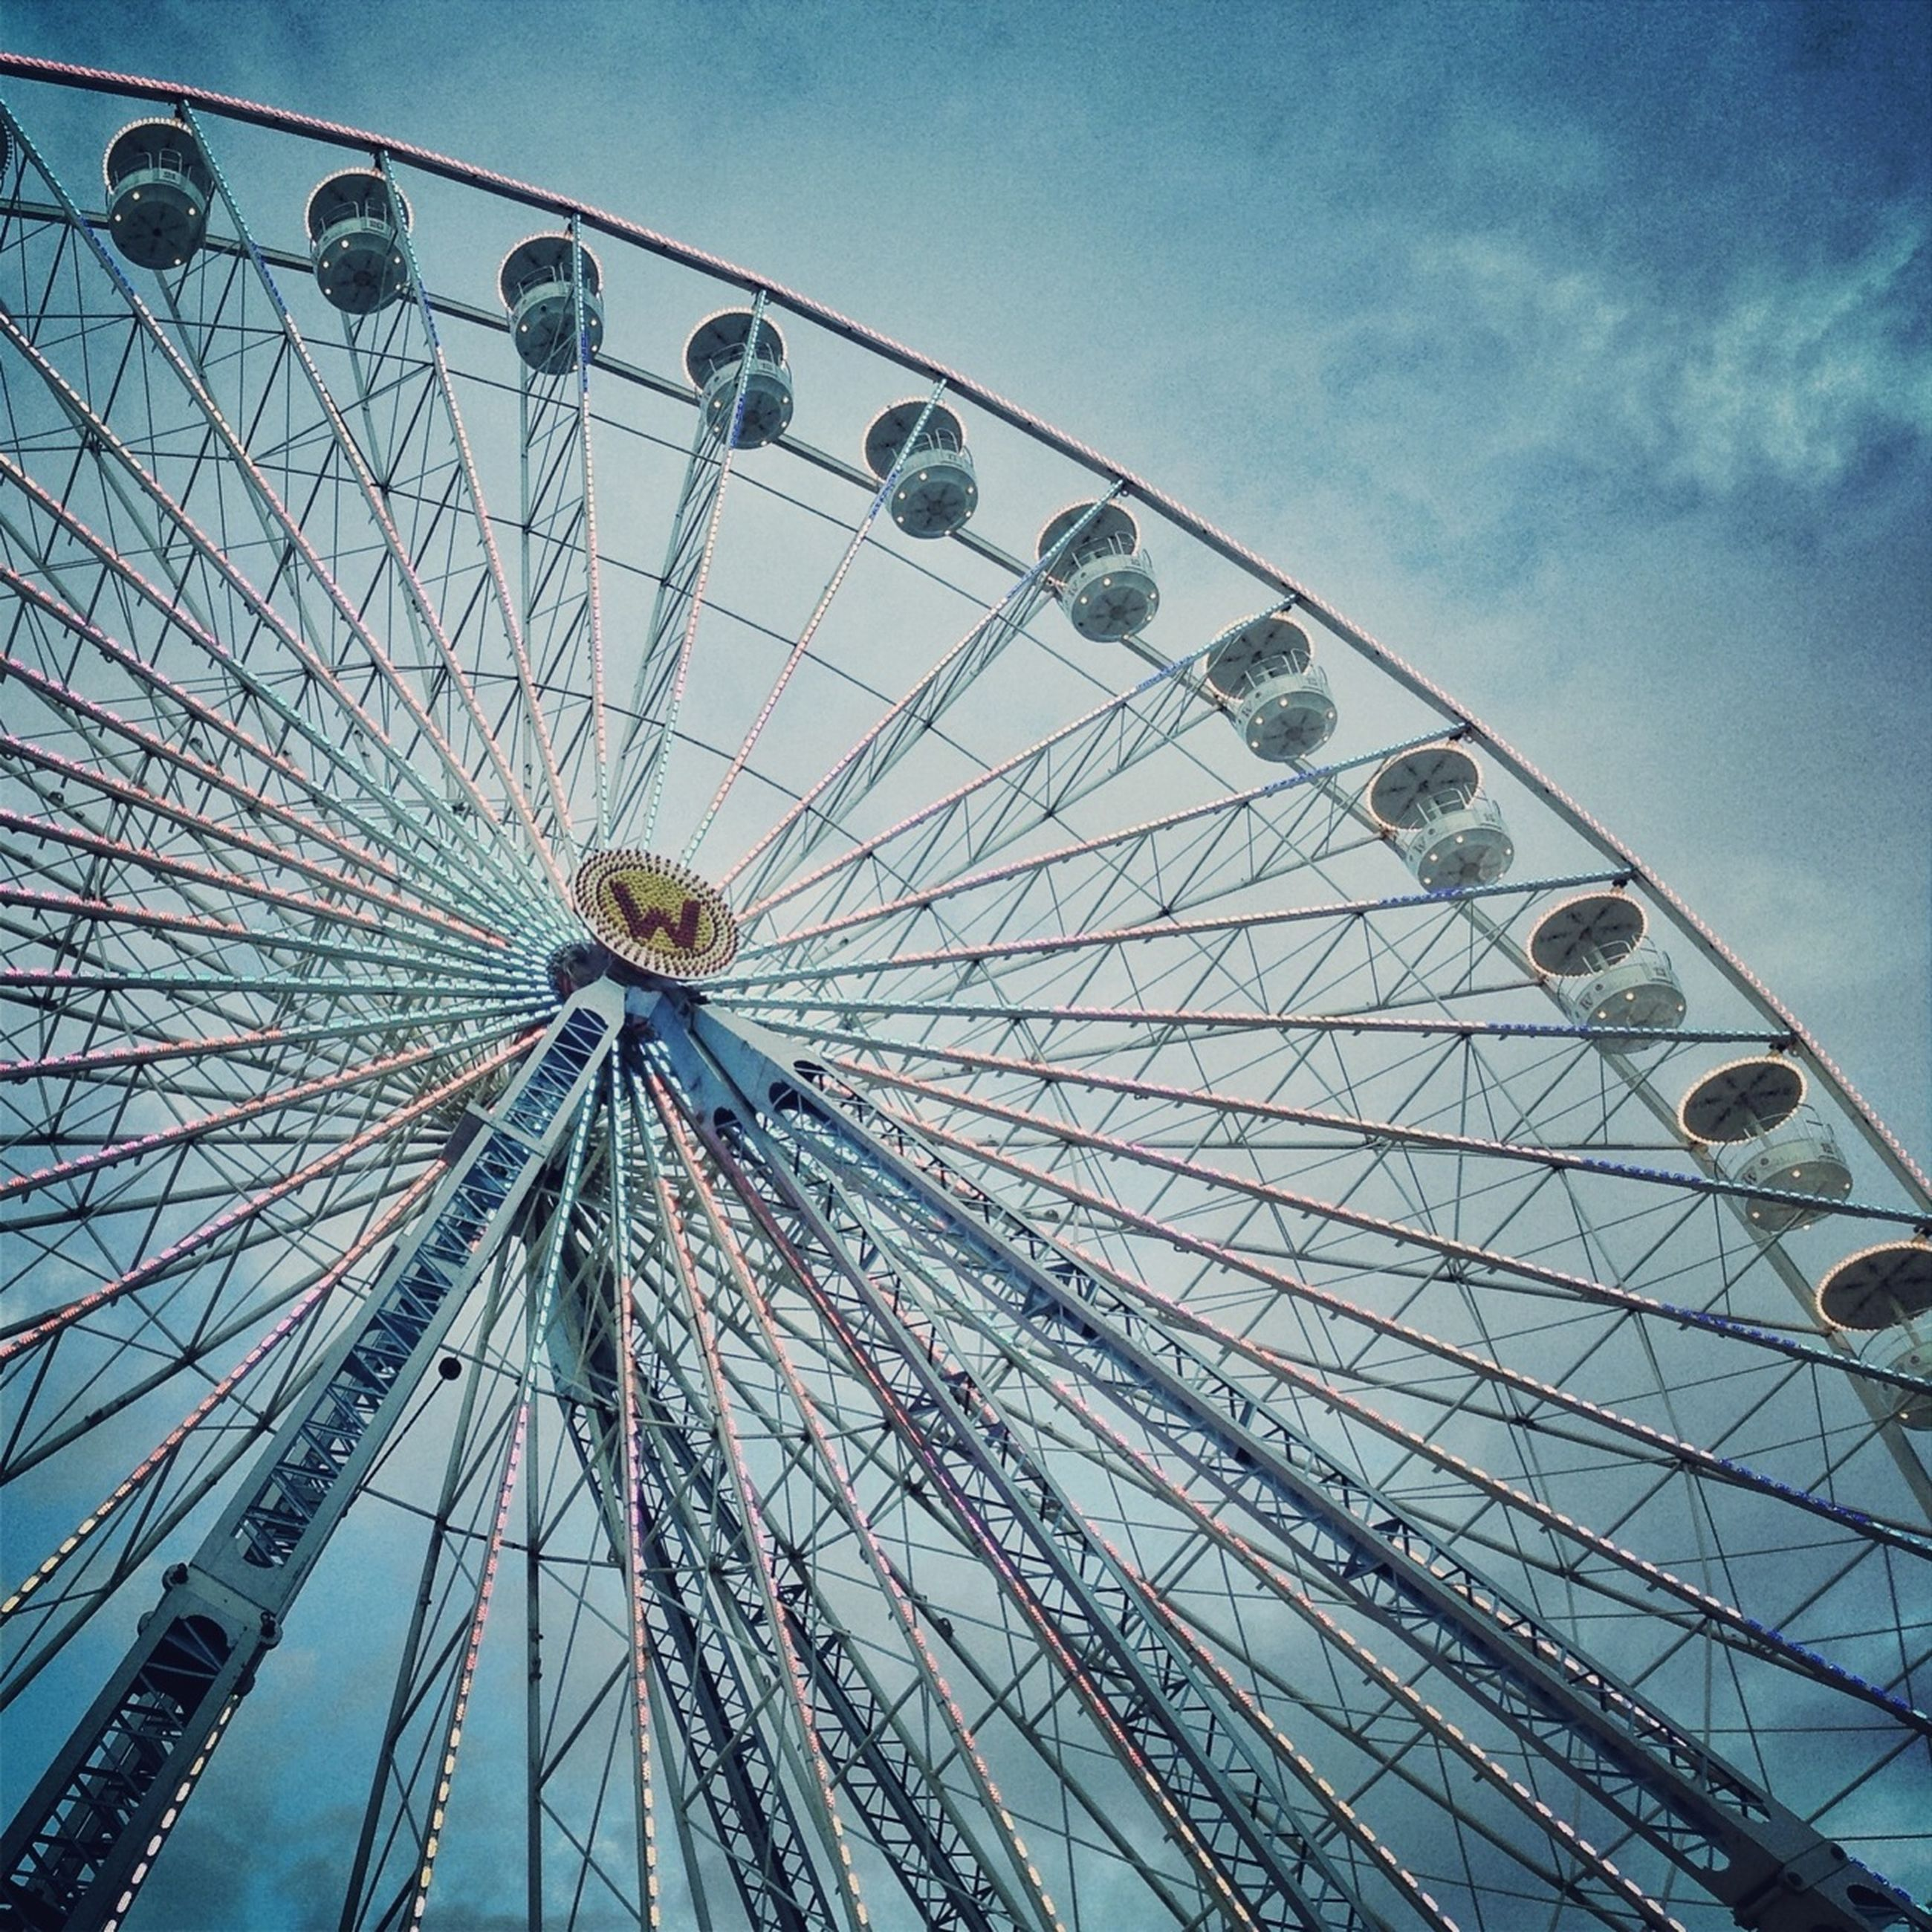 amusement park, ferris wheel, amusement park ride, arts culture and entertainment, low angle view, sky, blue, big wheel, built structure, large, fun, fairground, enjoyment, metal, fairground ride, outdoors, day, leisure activity, rollercoaster, architecture